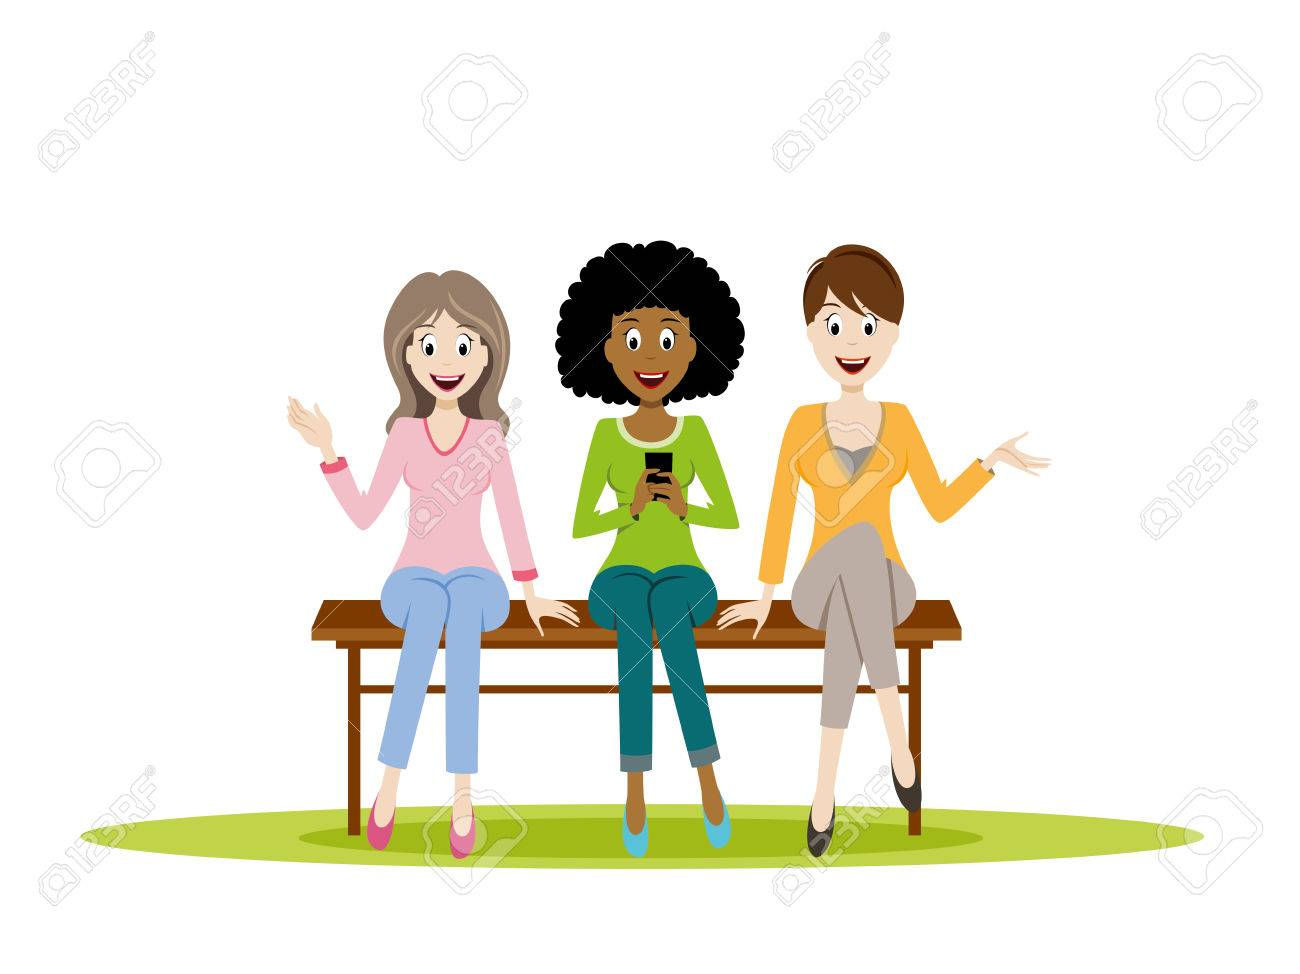 Three Girls Sitting On A Bench Royalty Free Cliparts Vectors And